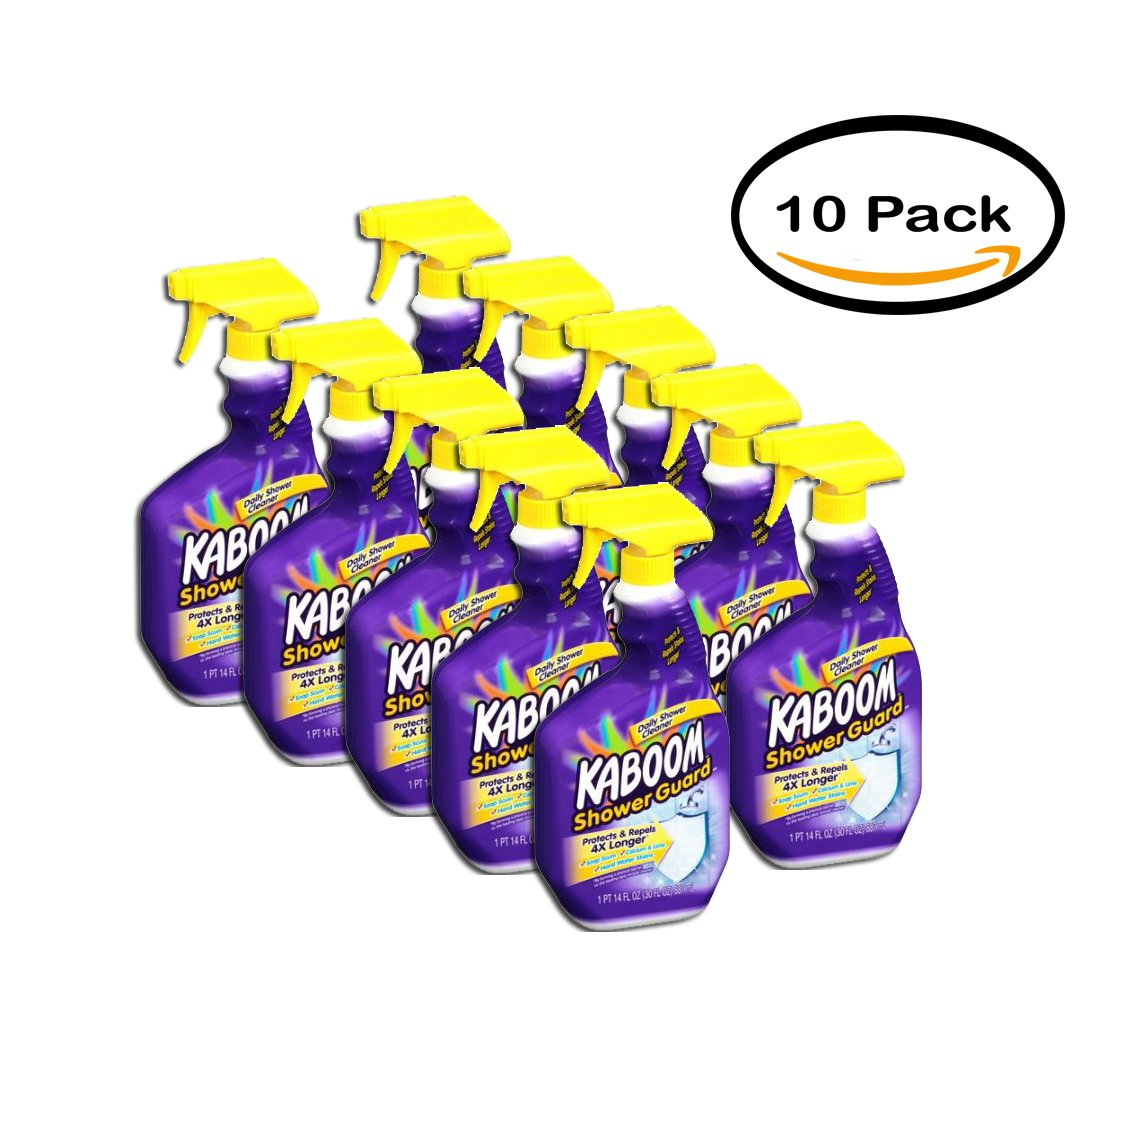 PACK OF 10 - Kaboom Shower Guard Daily Shower Cleaner, 30 fl oz